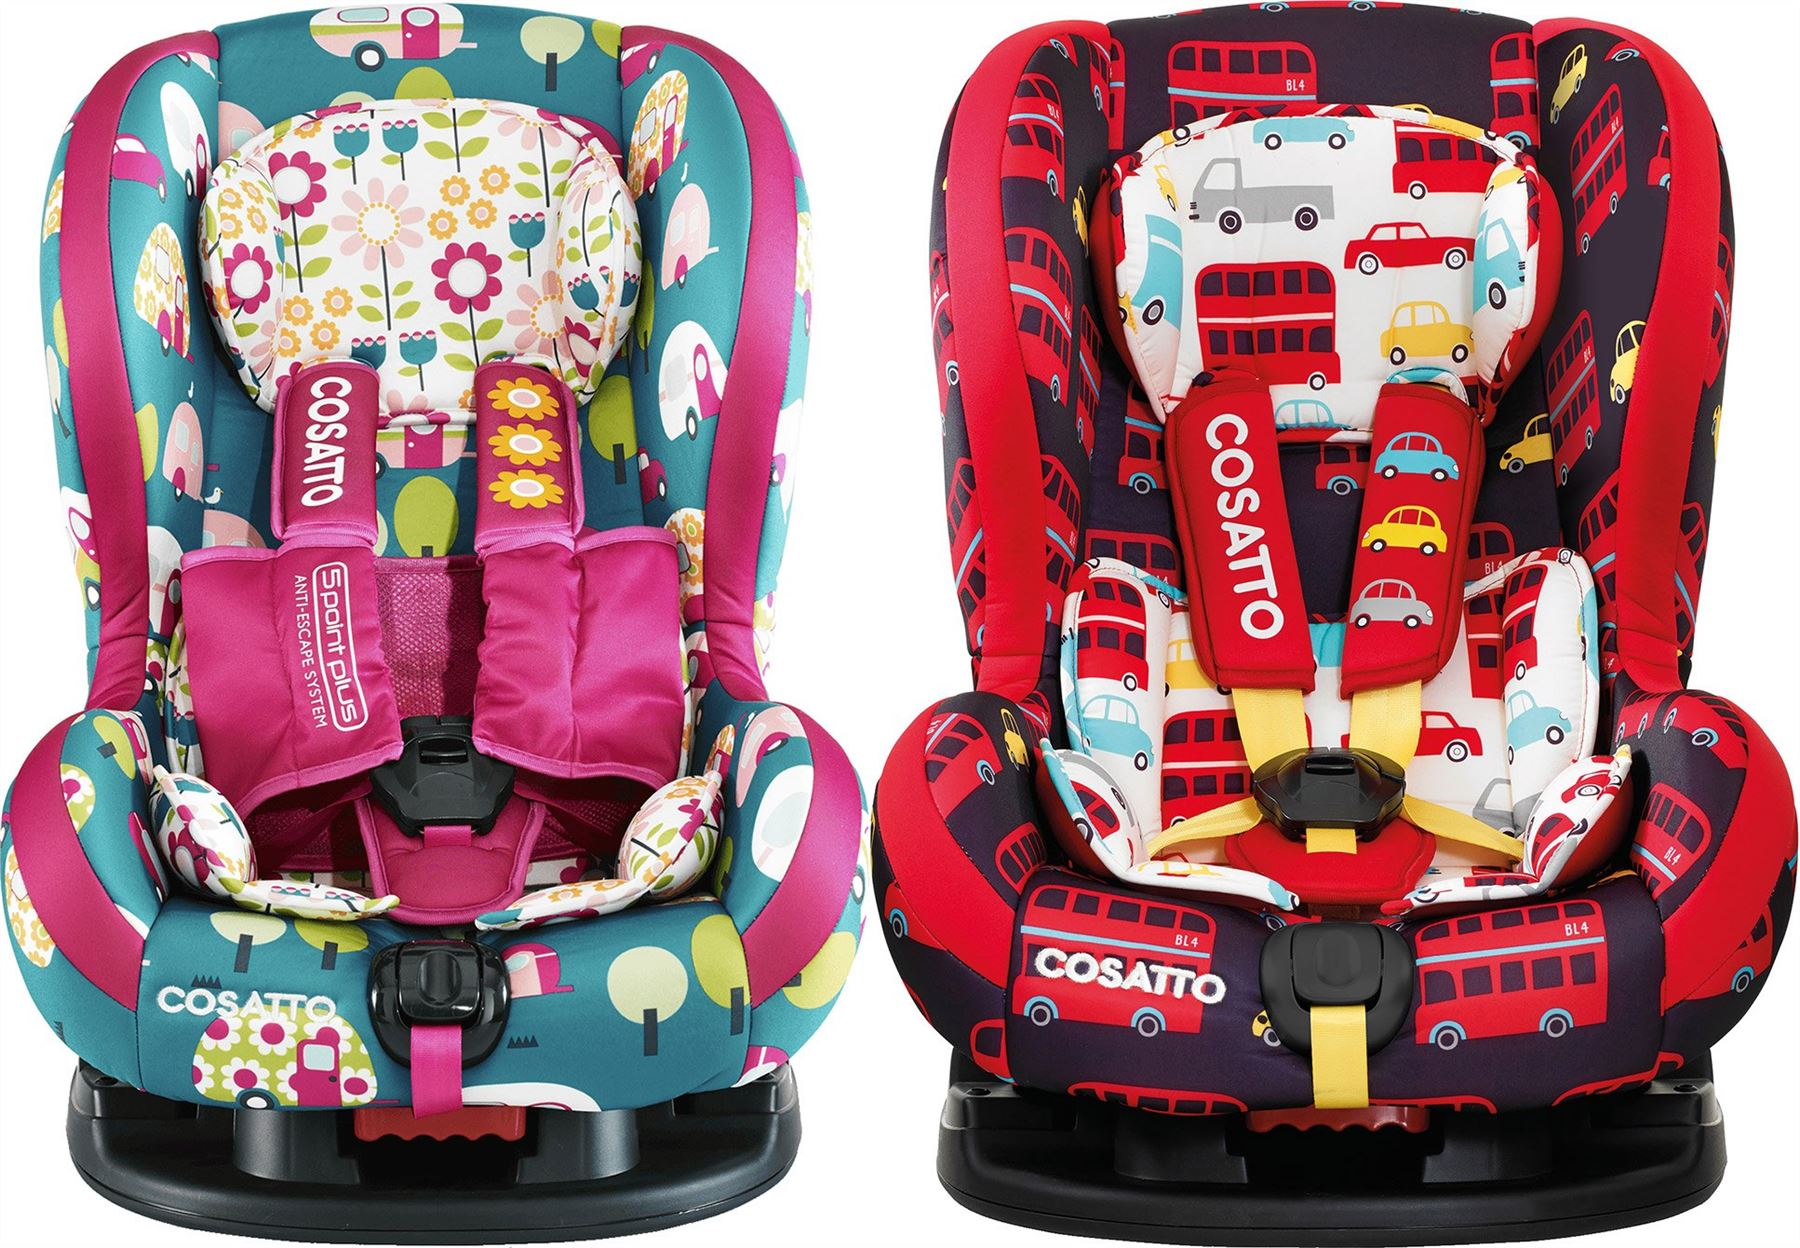 Cosatto MOOVA 2 GROUP 1 CAR SEAT 3 Reclines Travel Safety Baby/Child ...